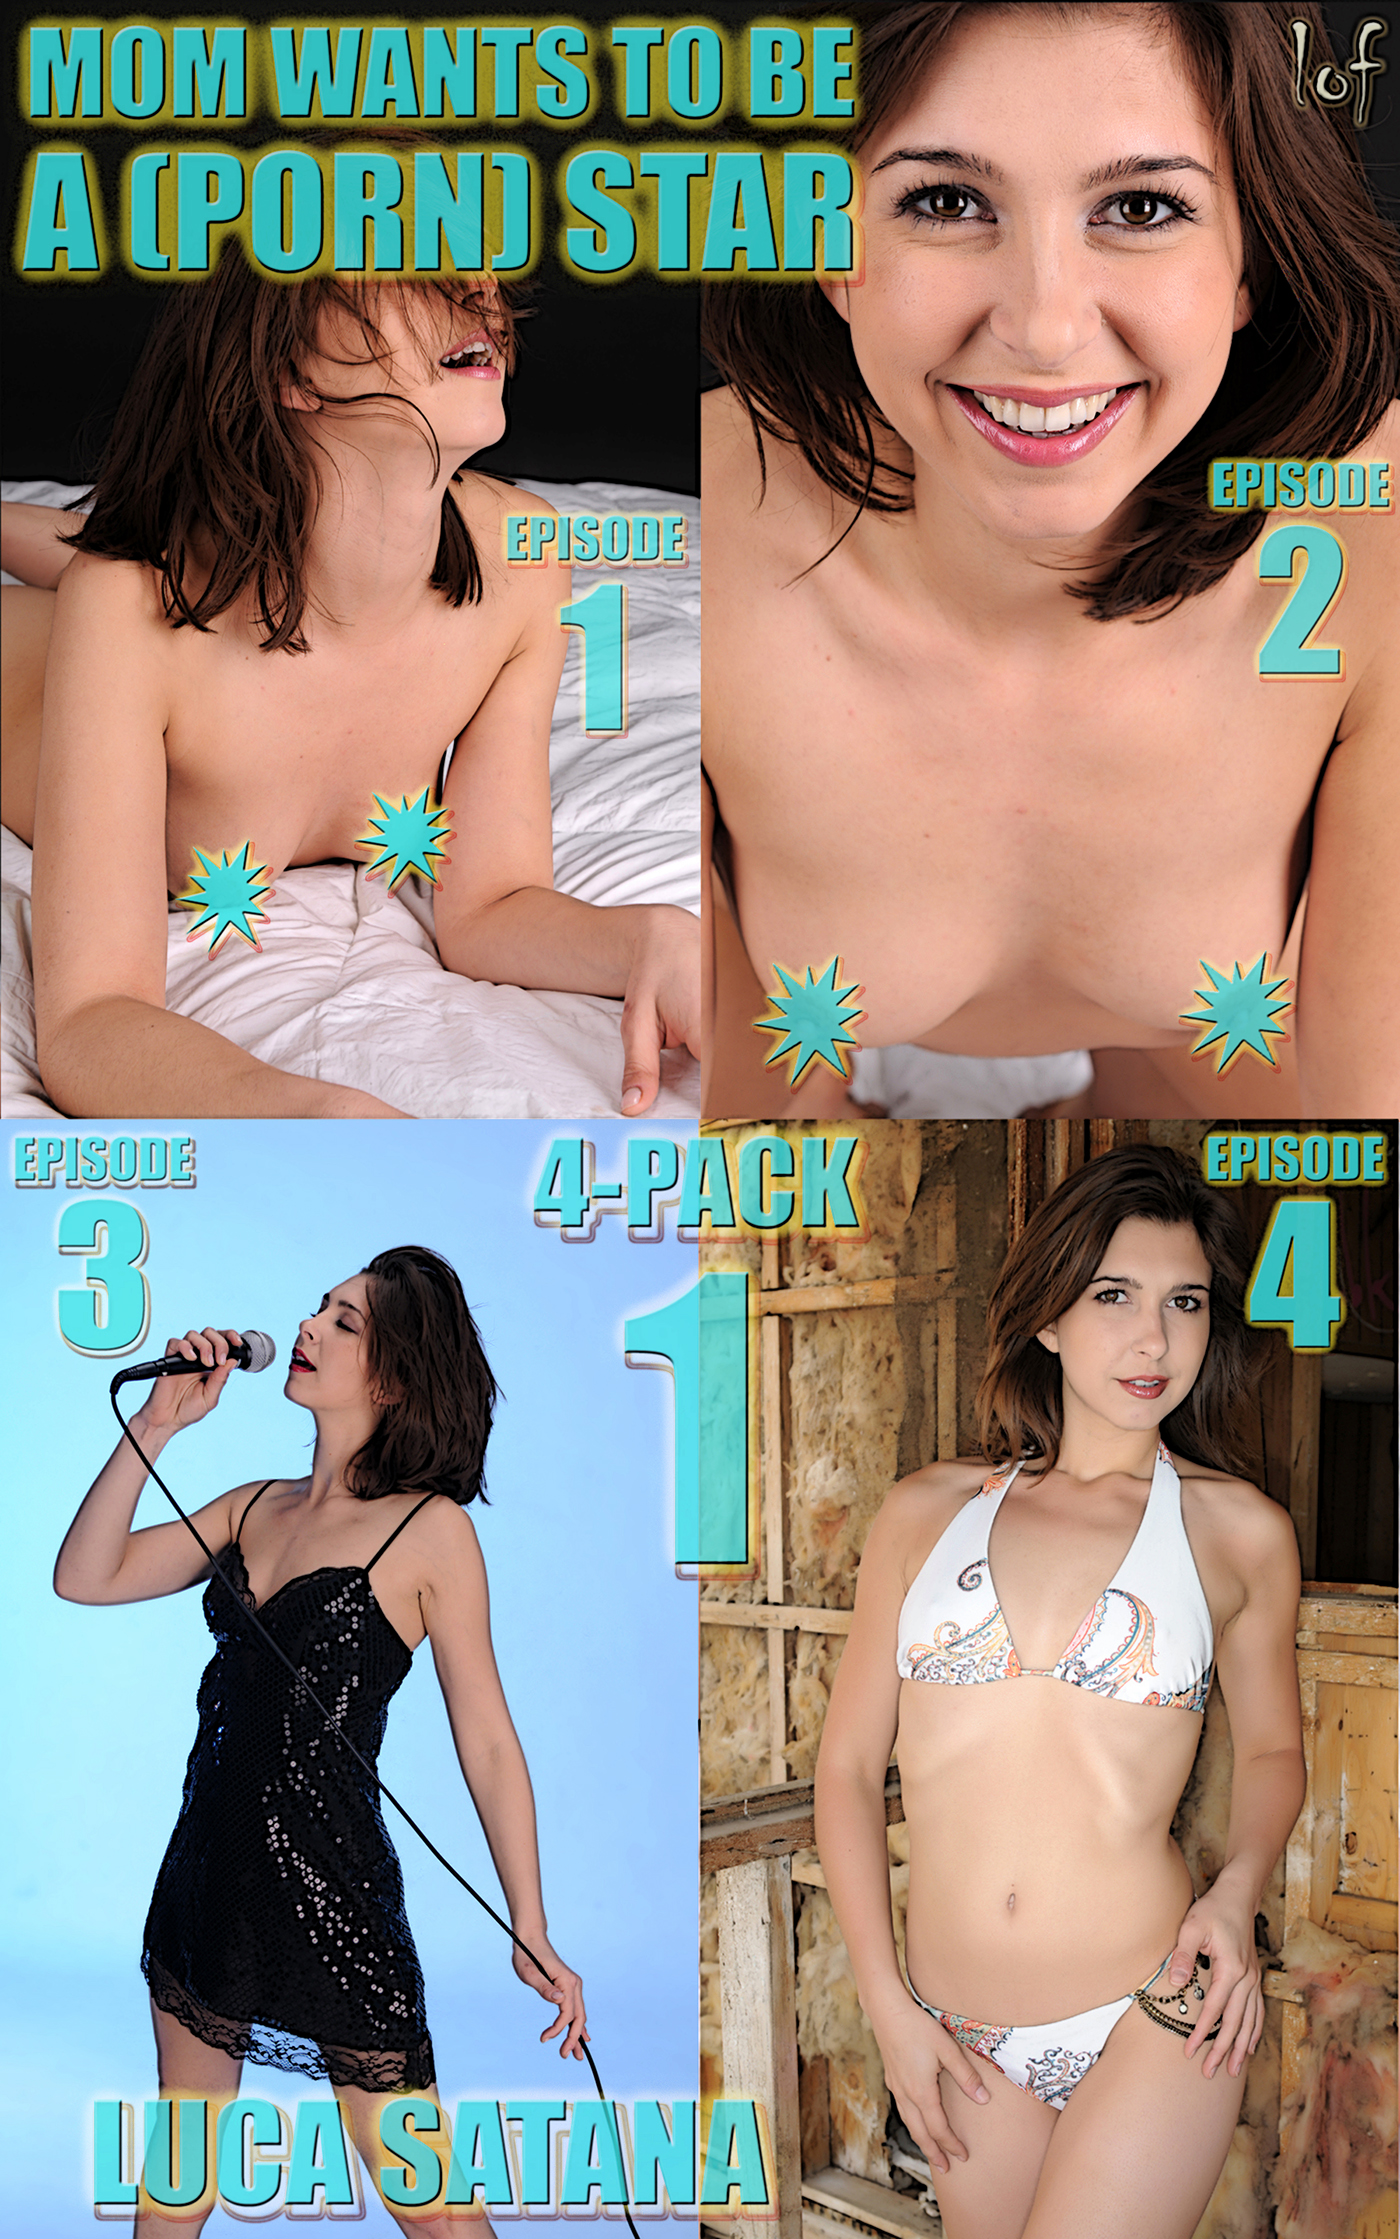 LOF New Release: Mom Wants To Be A (Porn) Star: 4-Pack 1 (Episode 1-4)